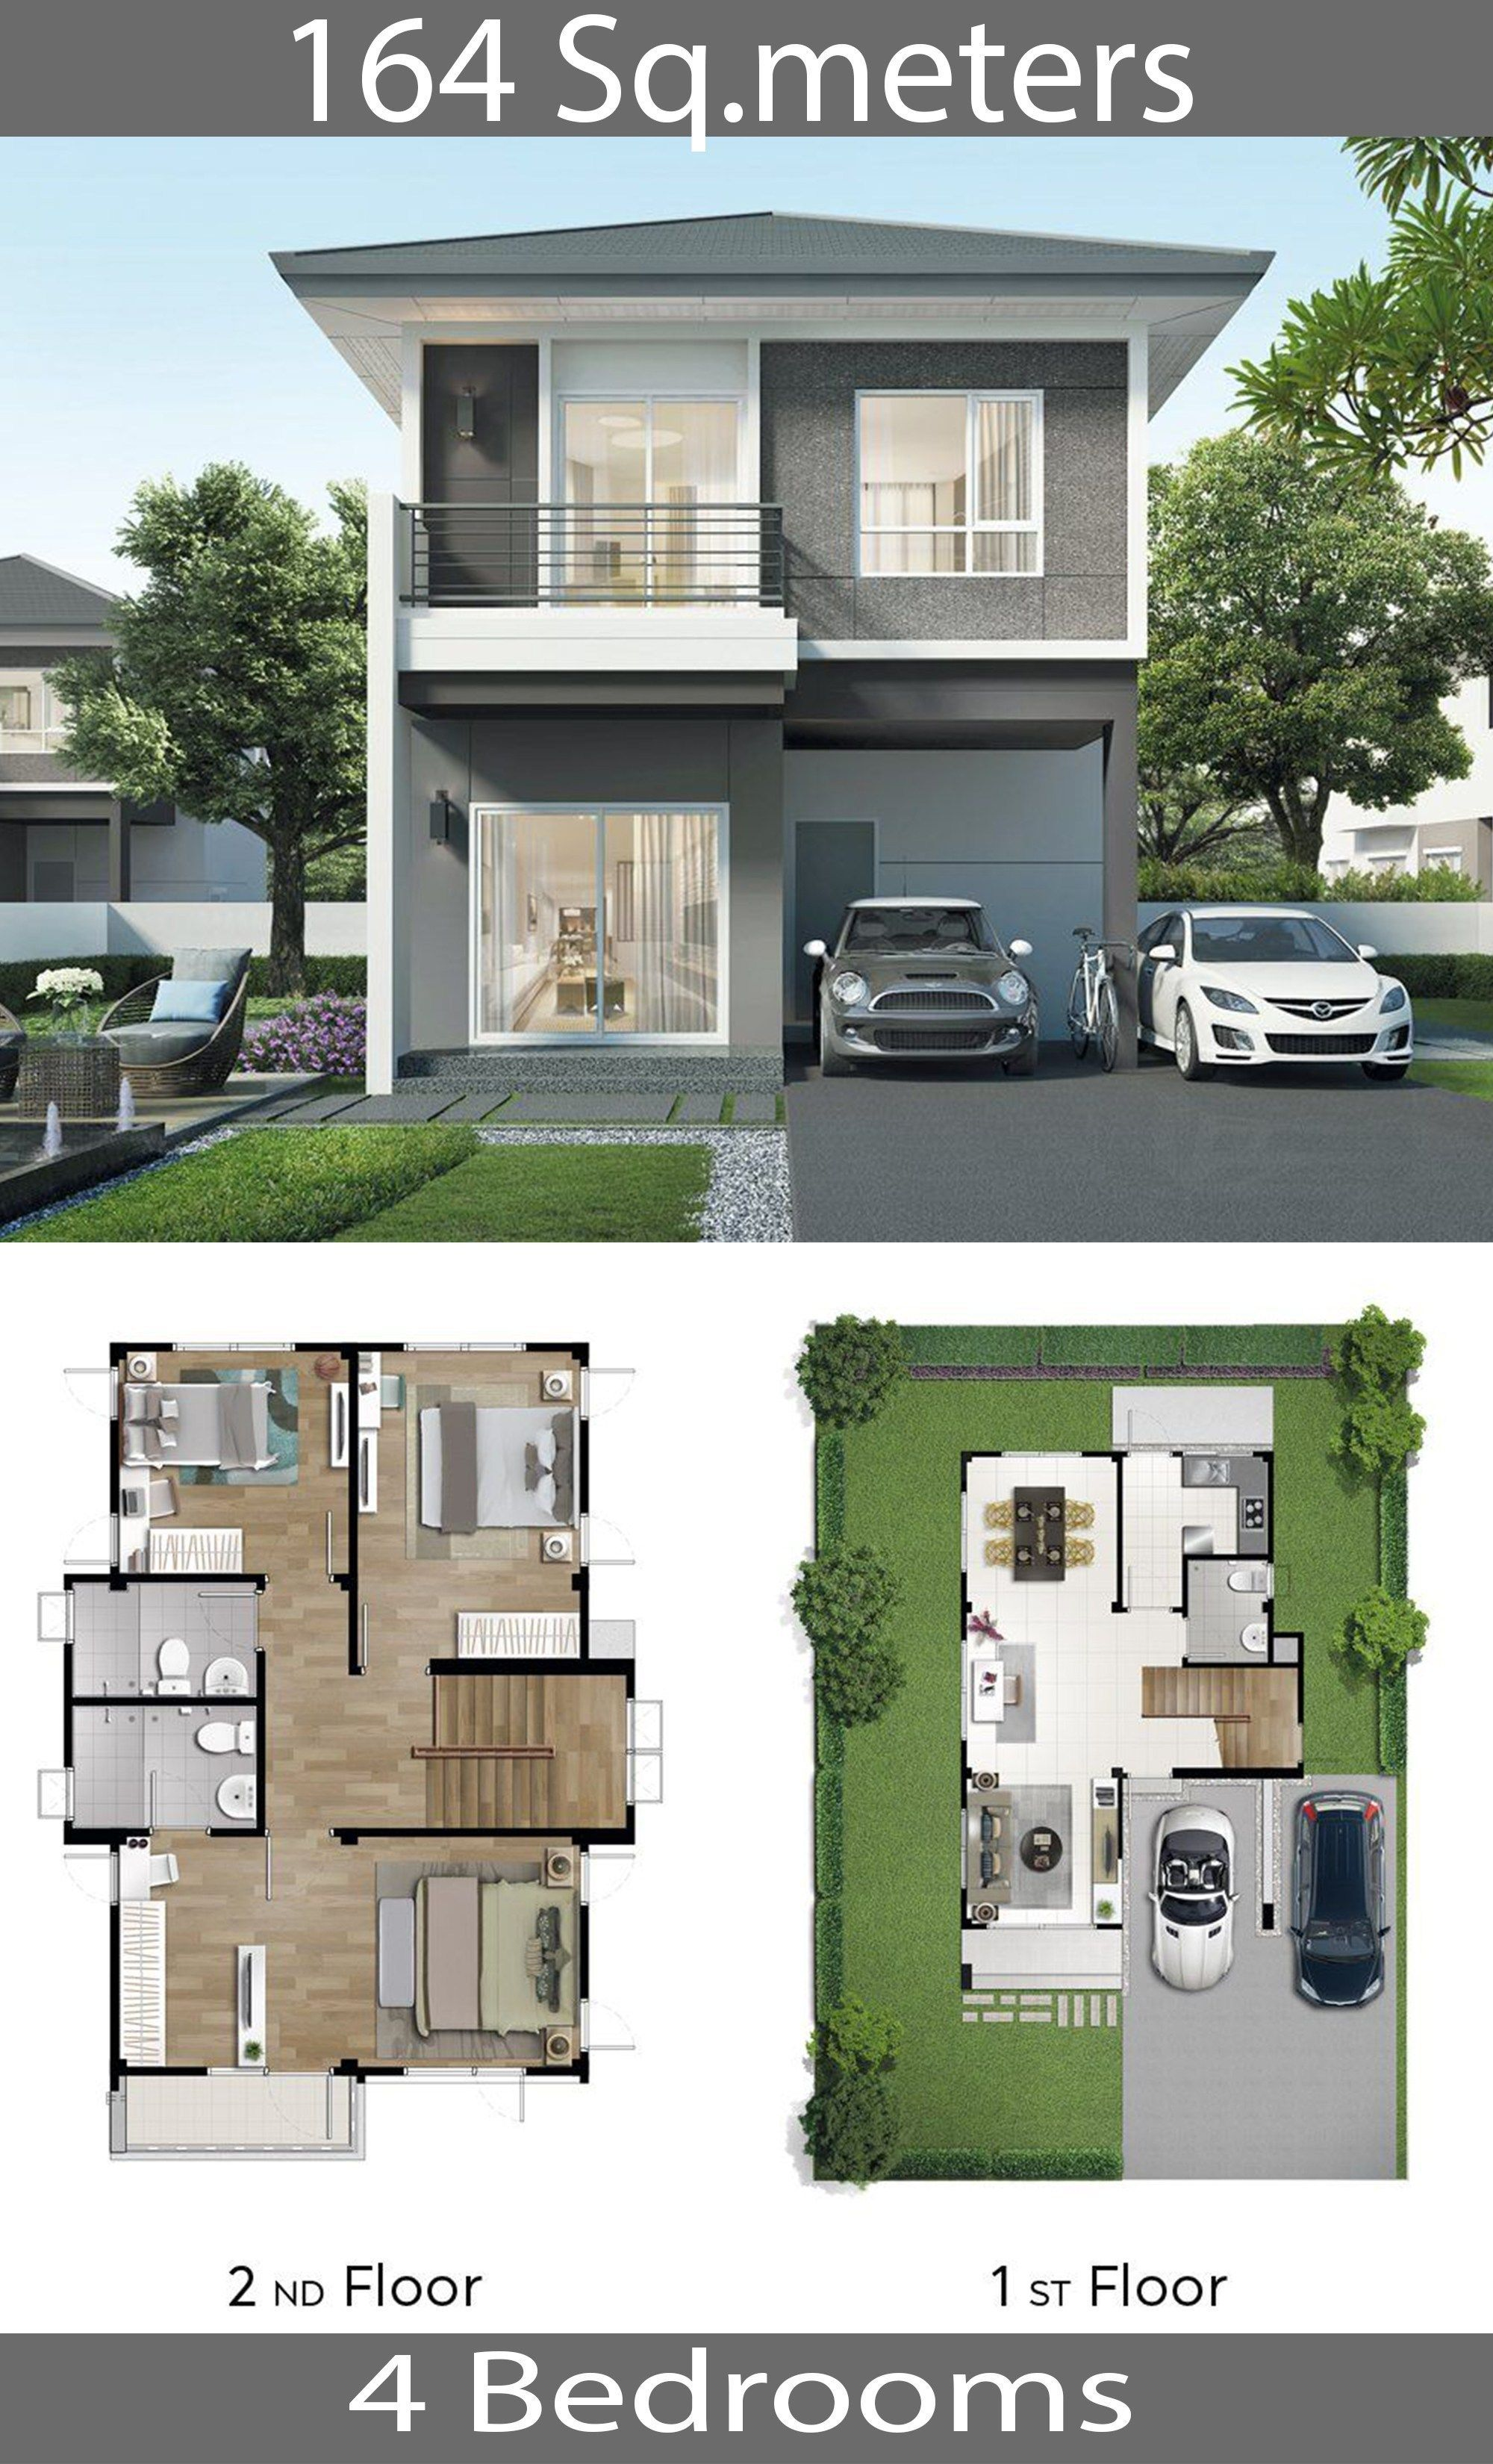 2 Story House 164 Sq M With 4 Bedrooms House Description Number Of Floors 2 Storey Housebedroom 4 R Model House Plan House Plan Gallery 2 Storey House Design